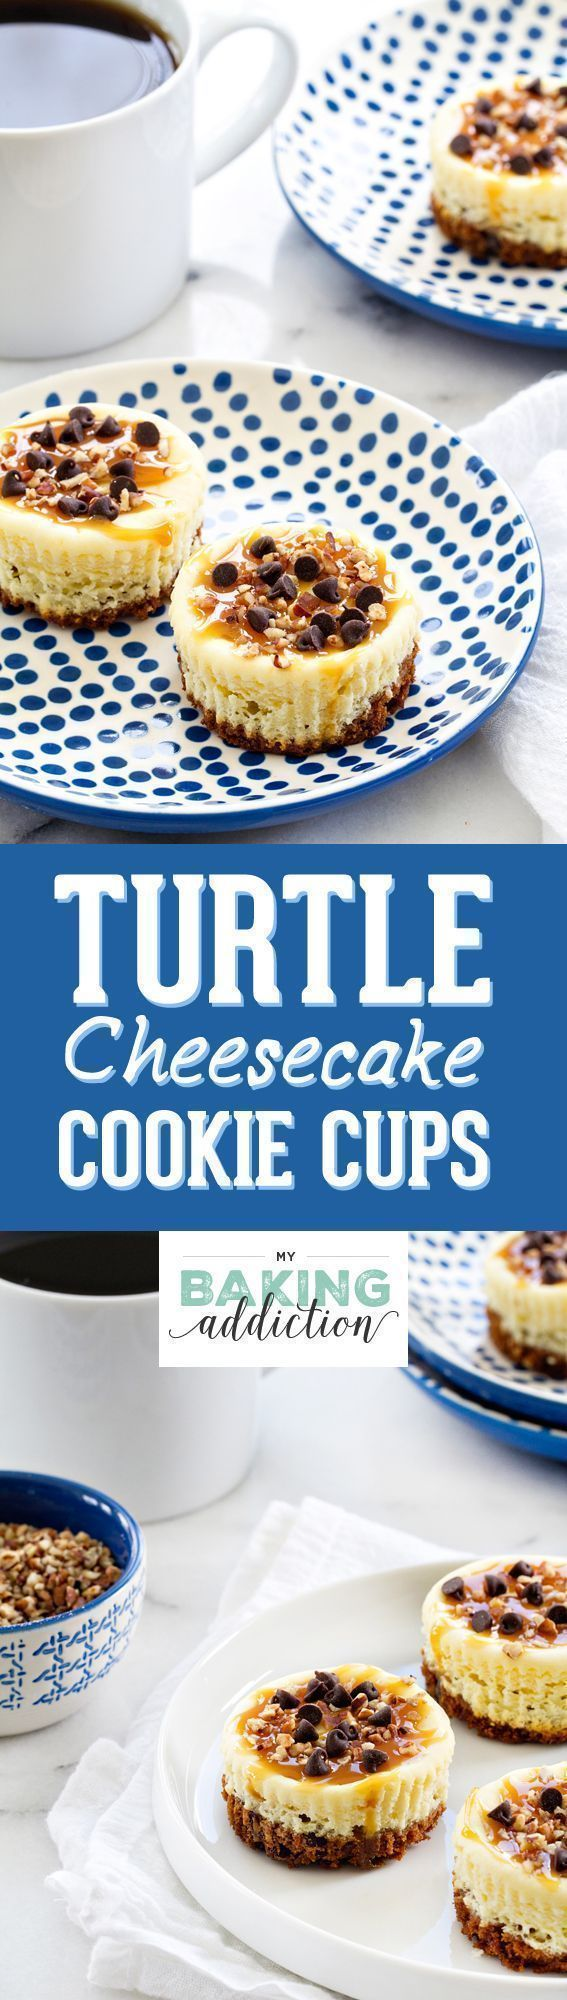 Turtle Cheesecake Cookie Cups are completely indulgent treats. And since they're mini, you can have a few! #turtlecheesecakerecipes Turtle Cheesecake Cookie Cups are completely indulgent treats. And since they're mini, you can have a few! #turtlecheesecakerecipes Turtle Cheesecake Cookie Cups are completely indulgent treats. And since they're mini, you can have a few! #turtlecheesecakerecipes Turtle Cheesecake Cookie Cups are completely indulgent treats. And since they're mini, you can have a fe #turtlecheesecakerecipes